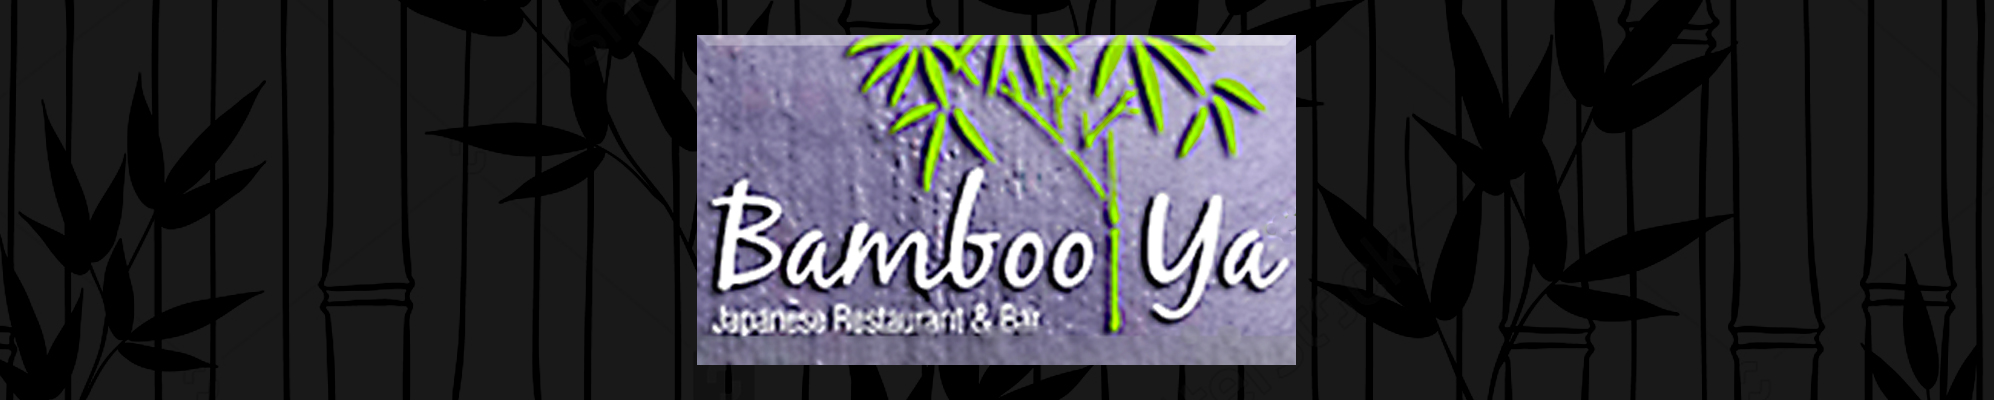 Welcome to Bamboo Ya